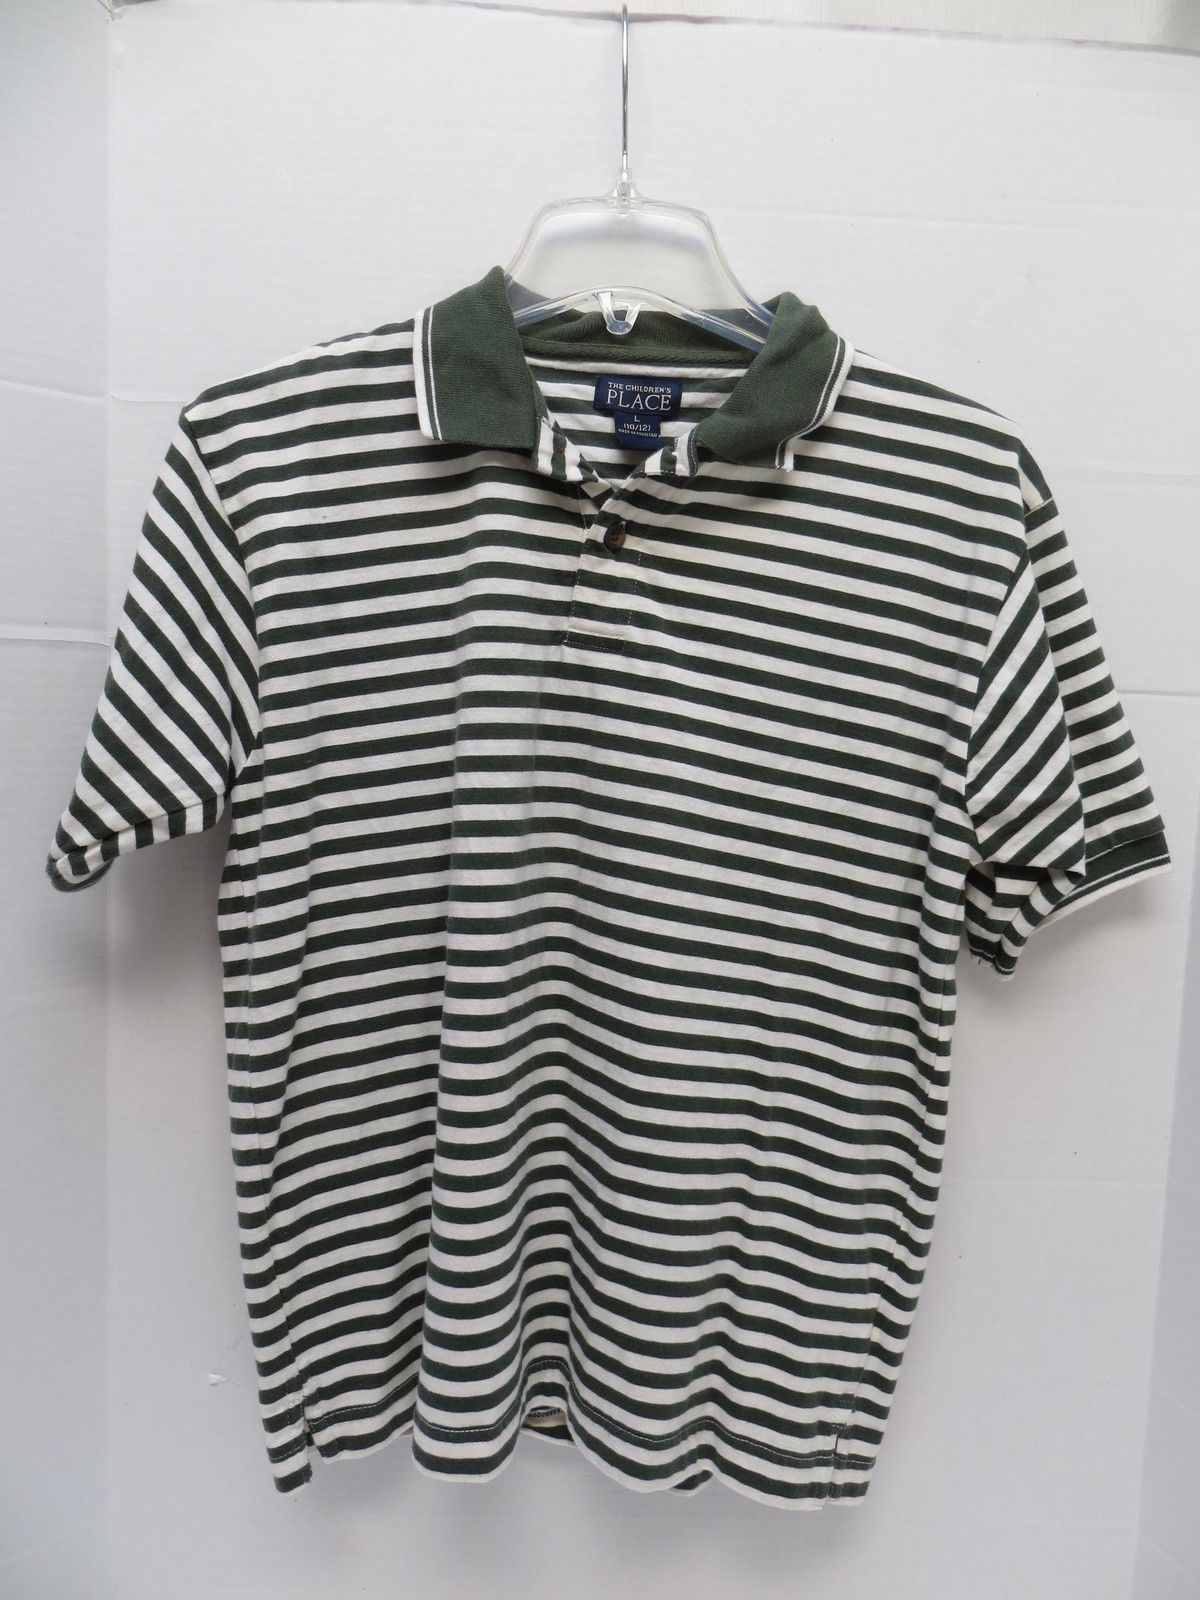 Boys Children's Place Pine Green Striped Polo Size L - $6.79